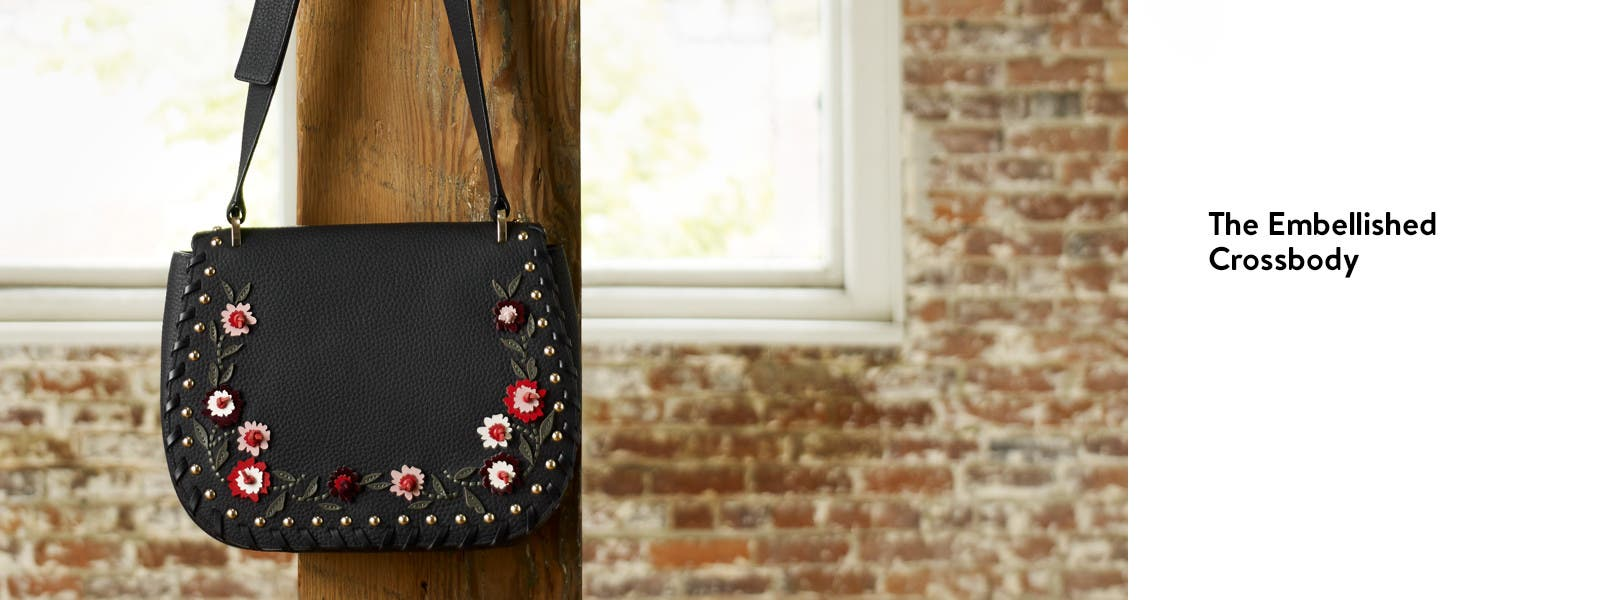 The embellished crossbody.